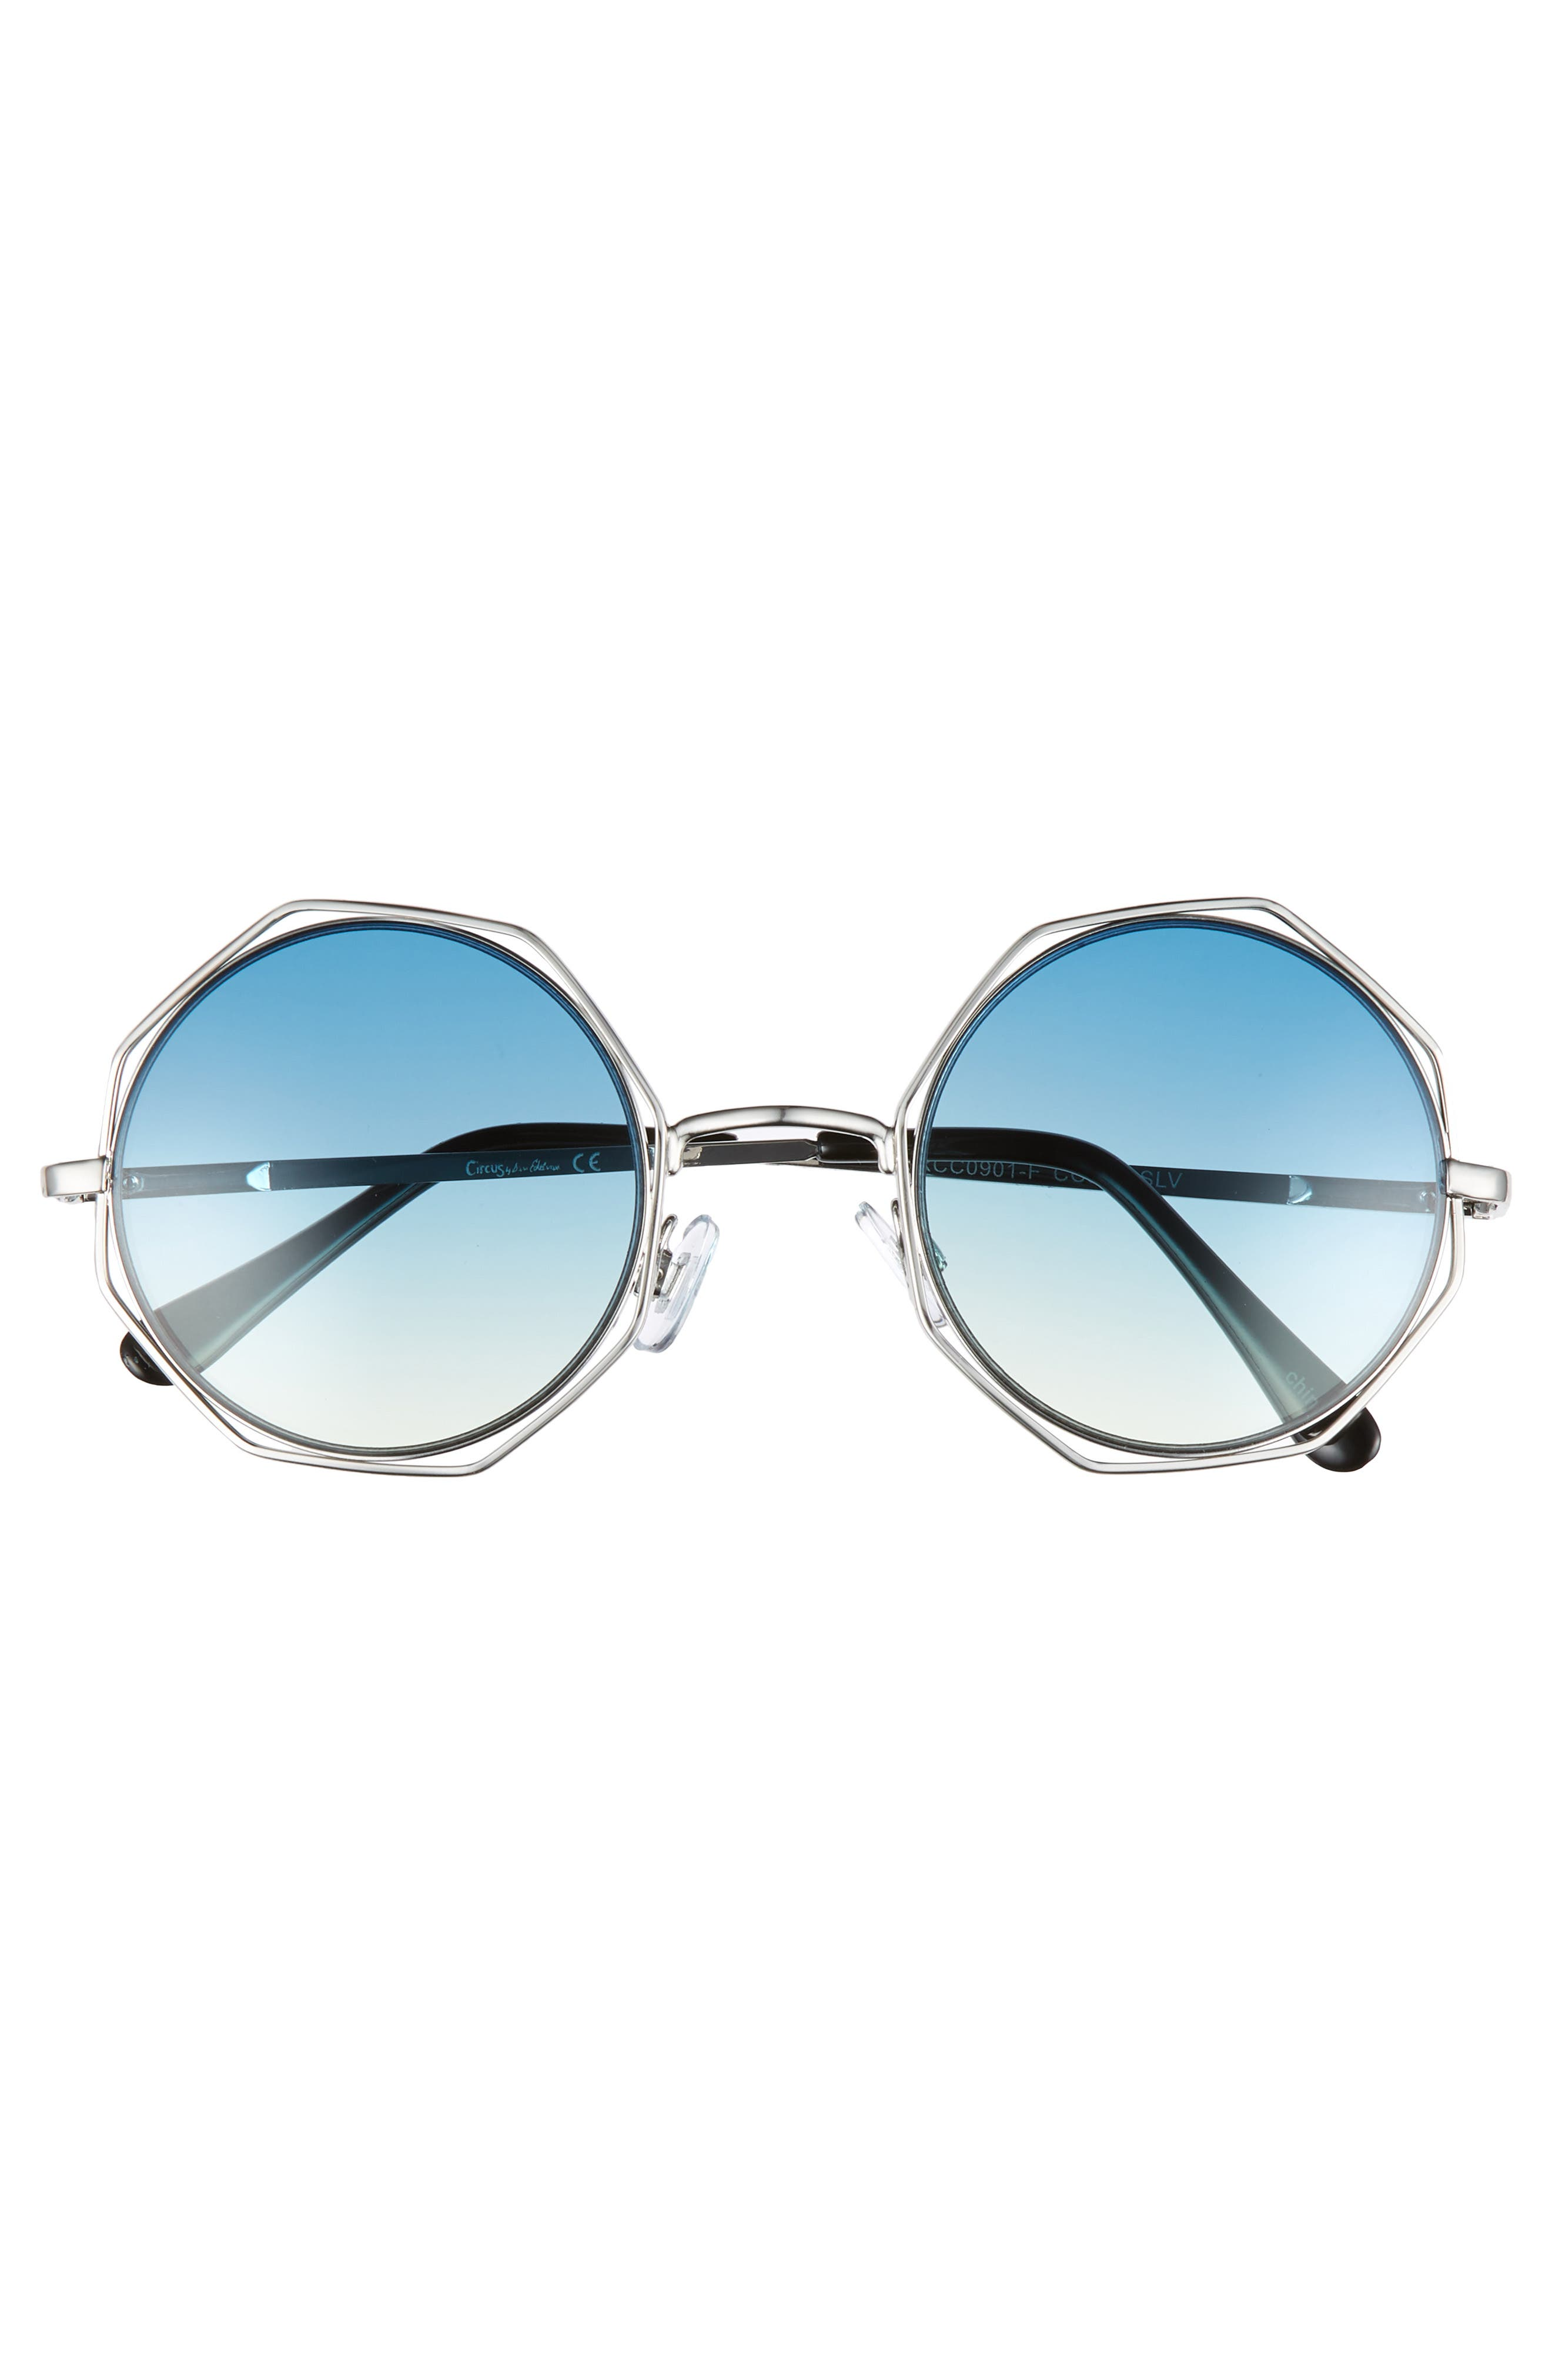 50mm Round Sunglasses,                             Alternate thumbnail 3, color,                             Silver